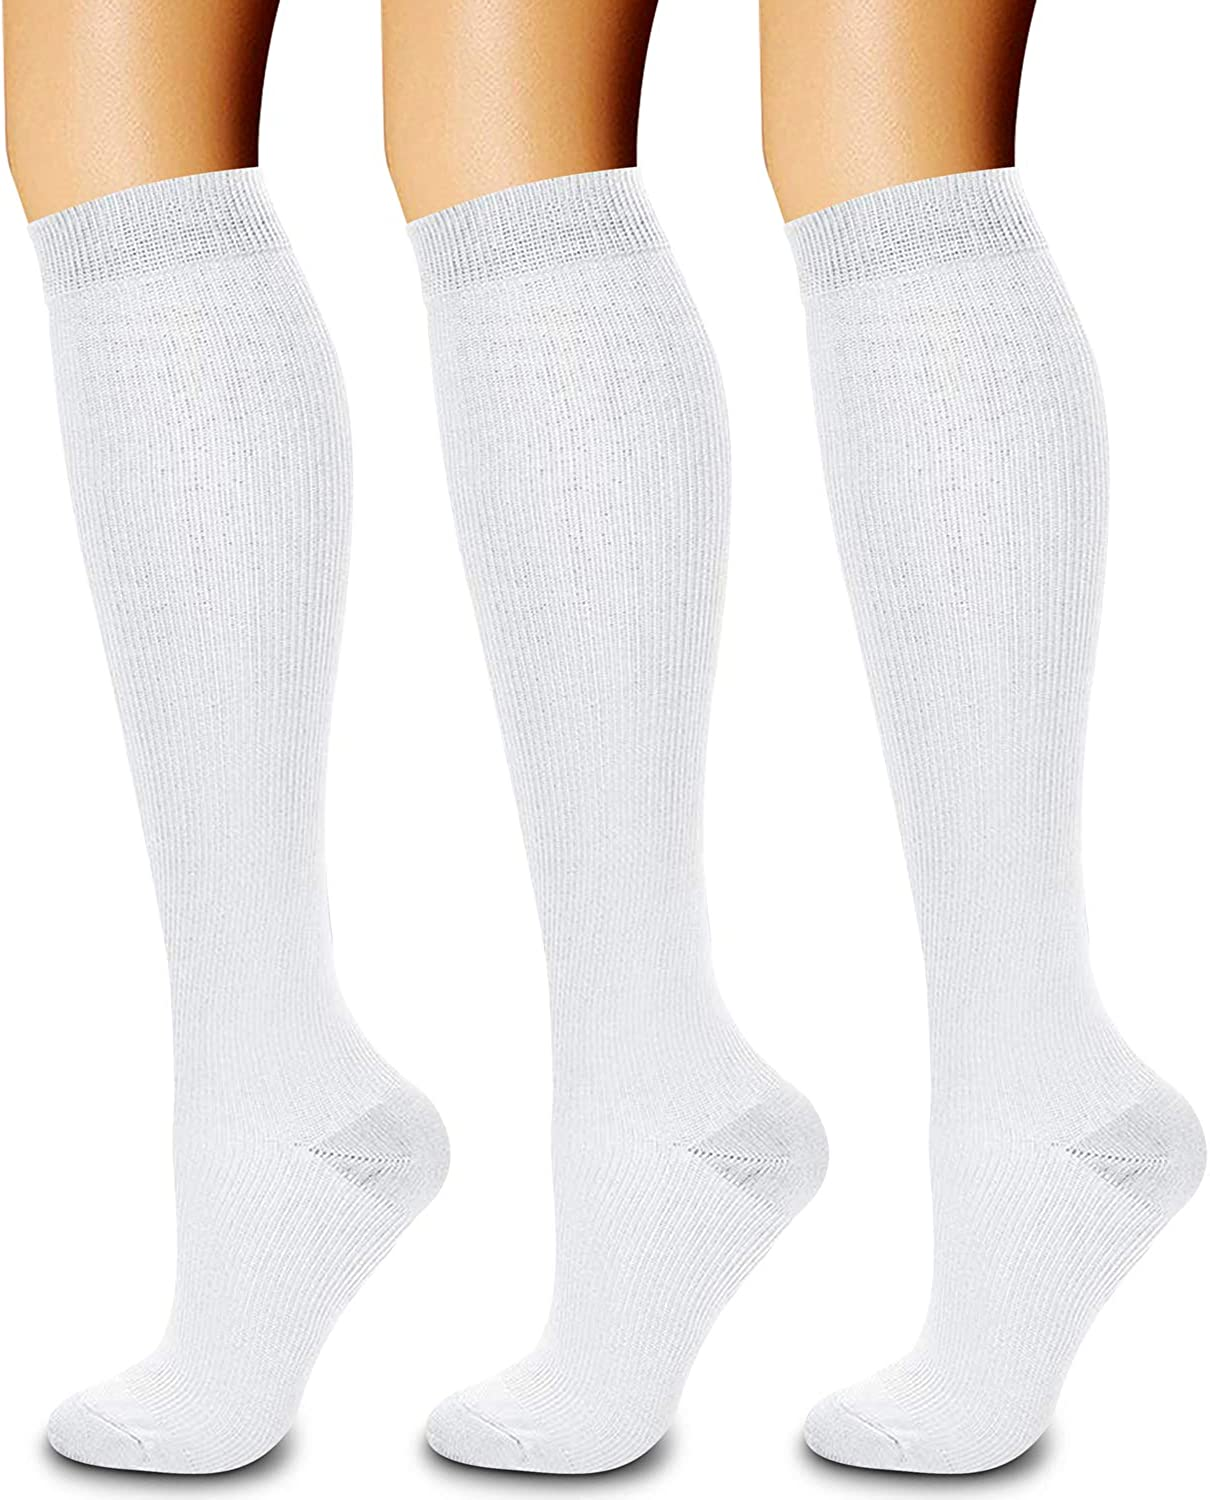 CHARMKING Compression Socks for Women & Men Circulation (3 Pairs)15-20 mmHg is Best Support for Athletic Running Cycling: Clothing